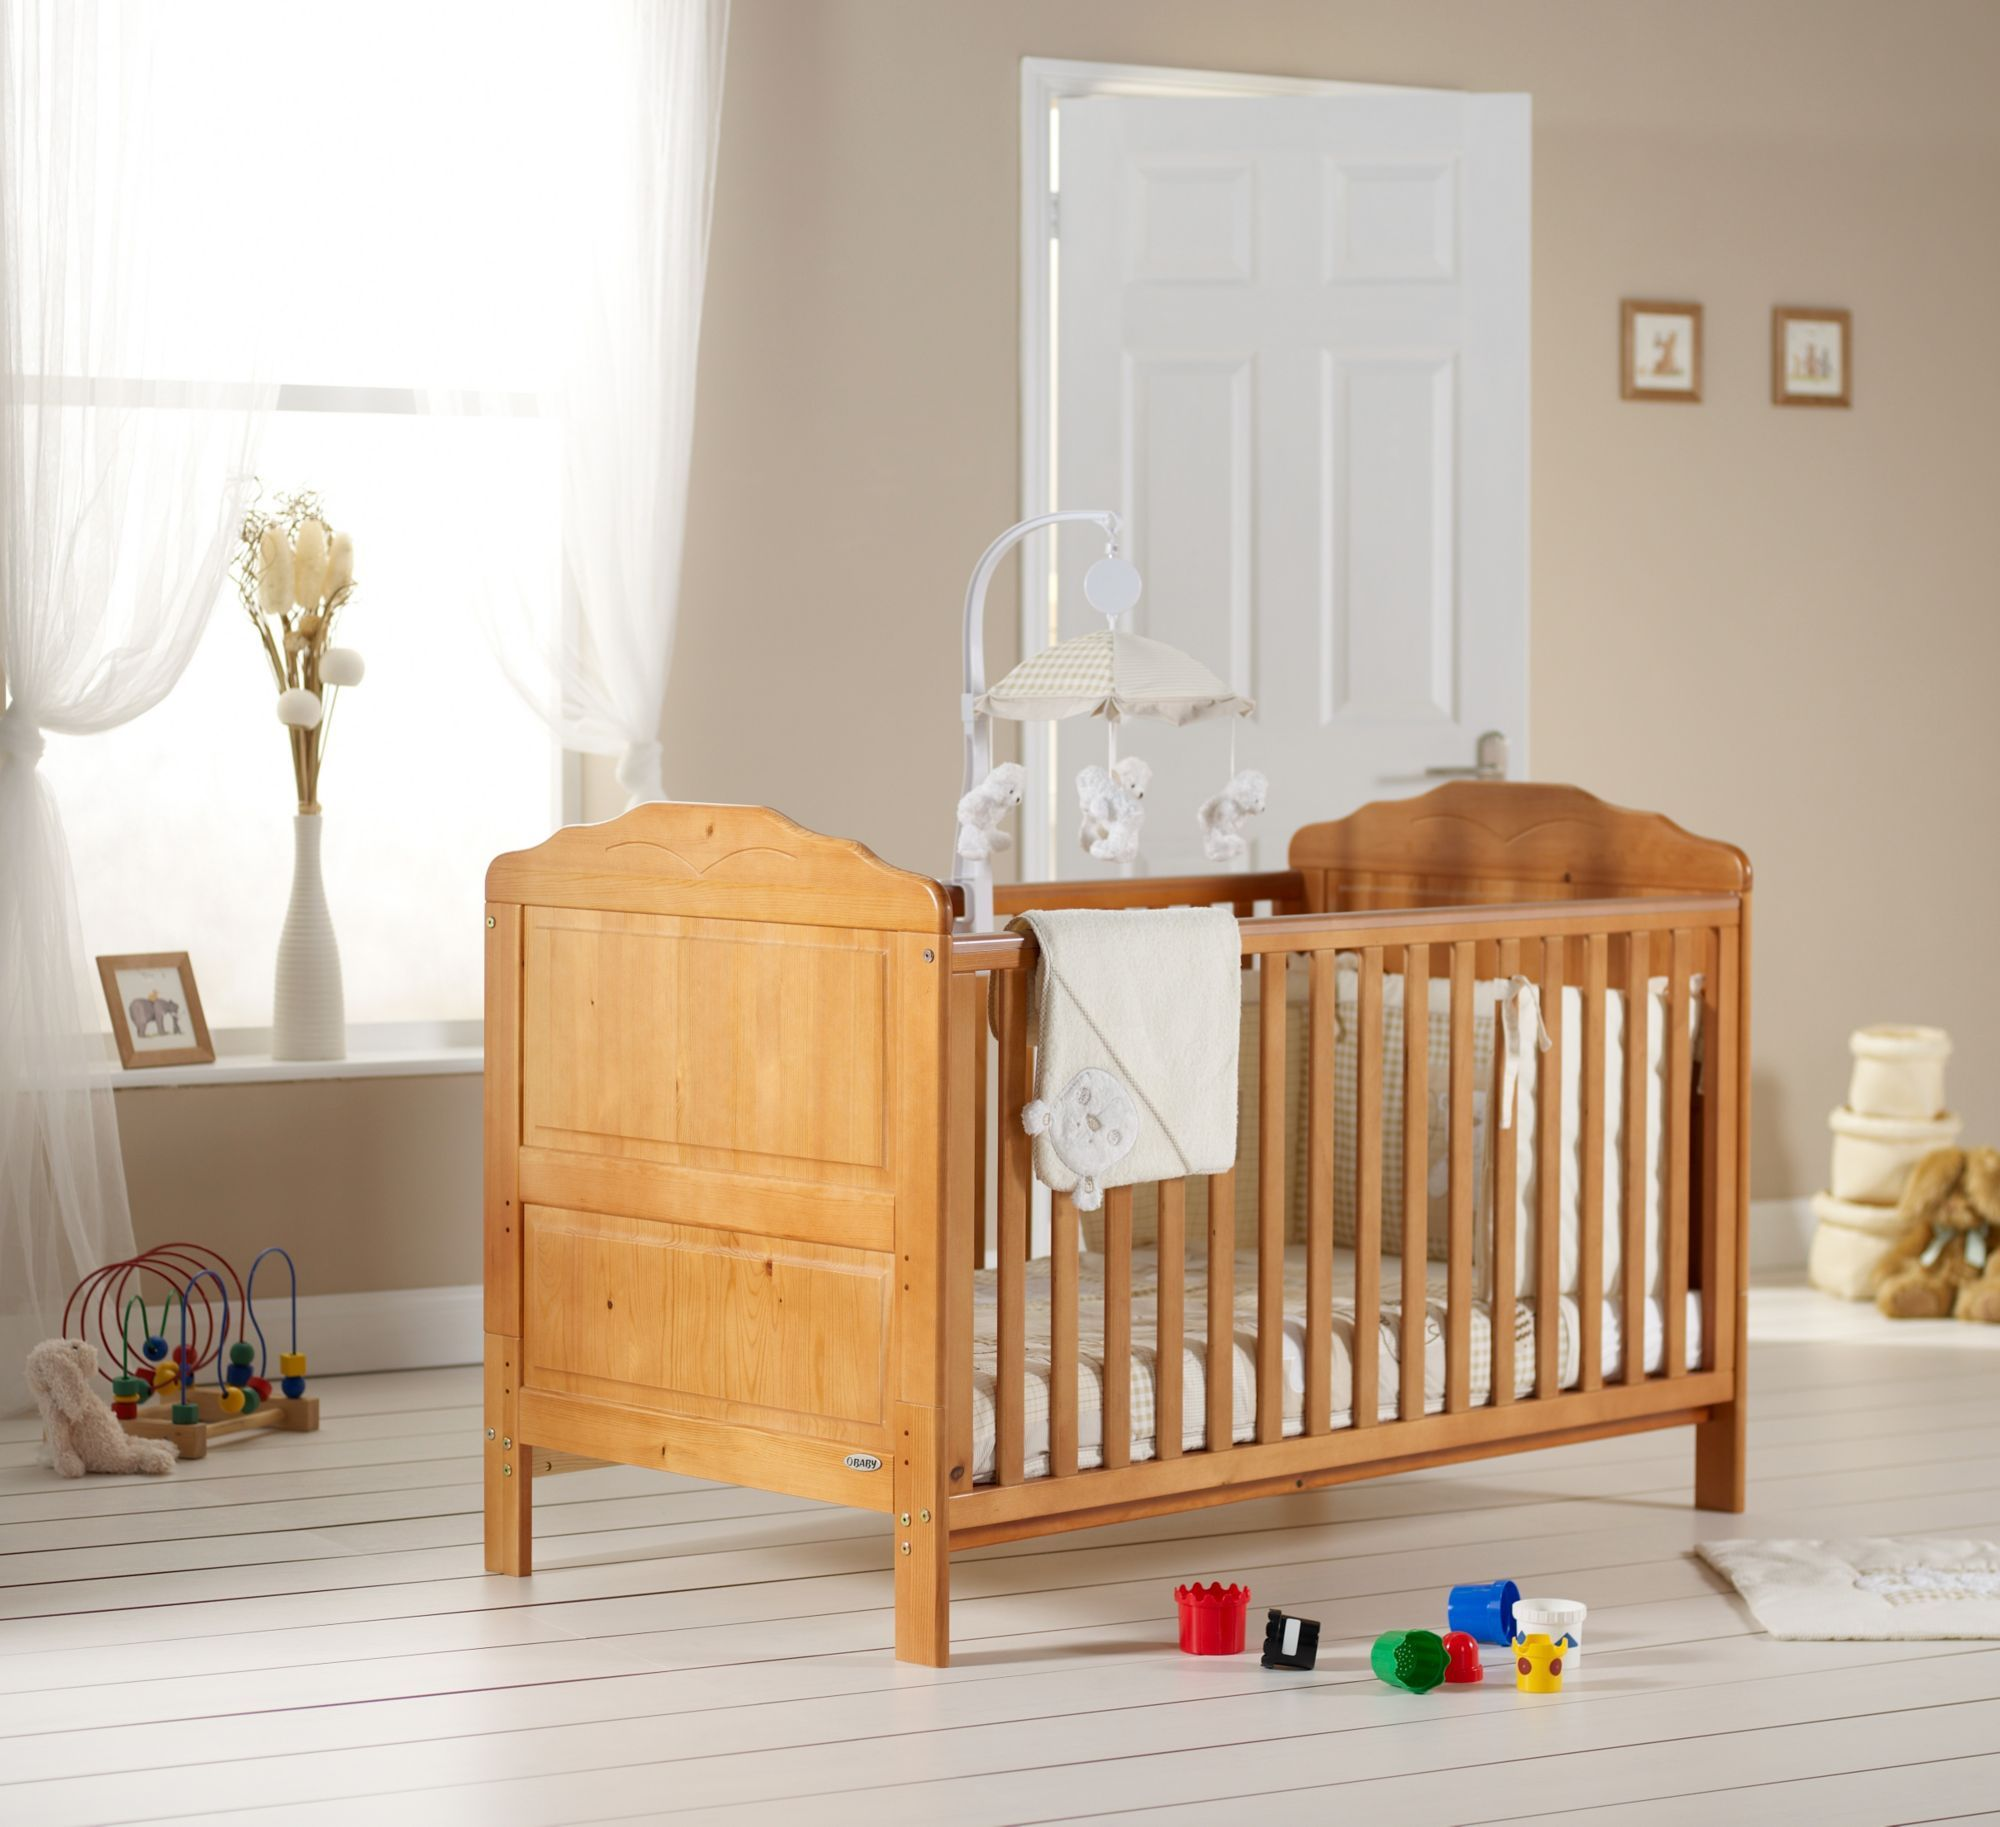 OBaby Beverley Cot Bed   Country Pine £139